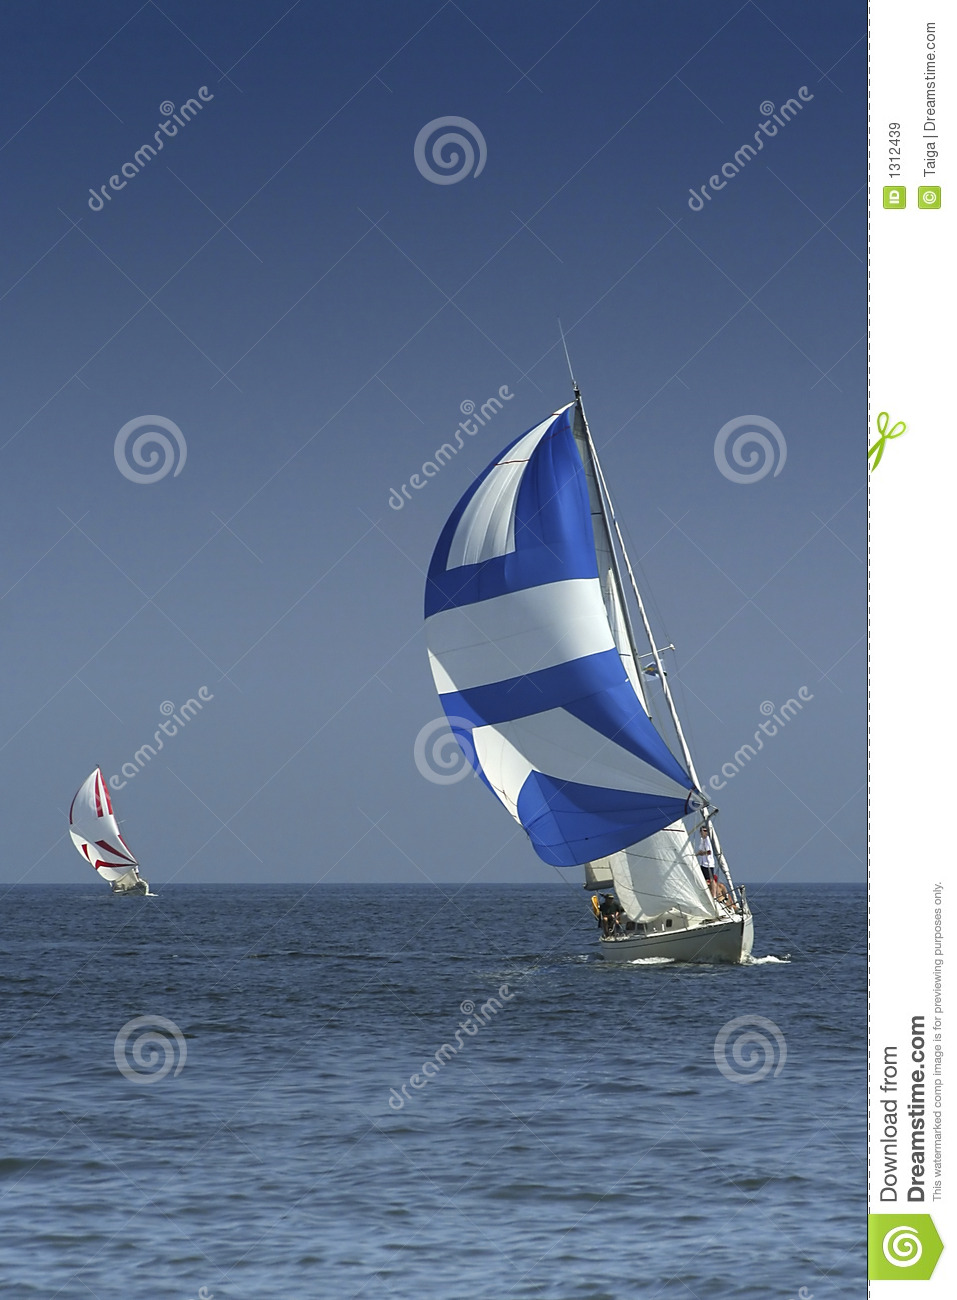 Sailing. The winner and losed